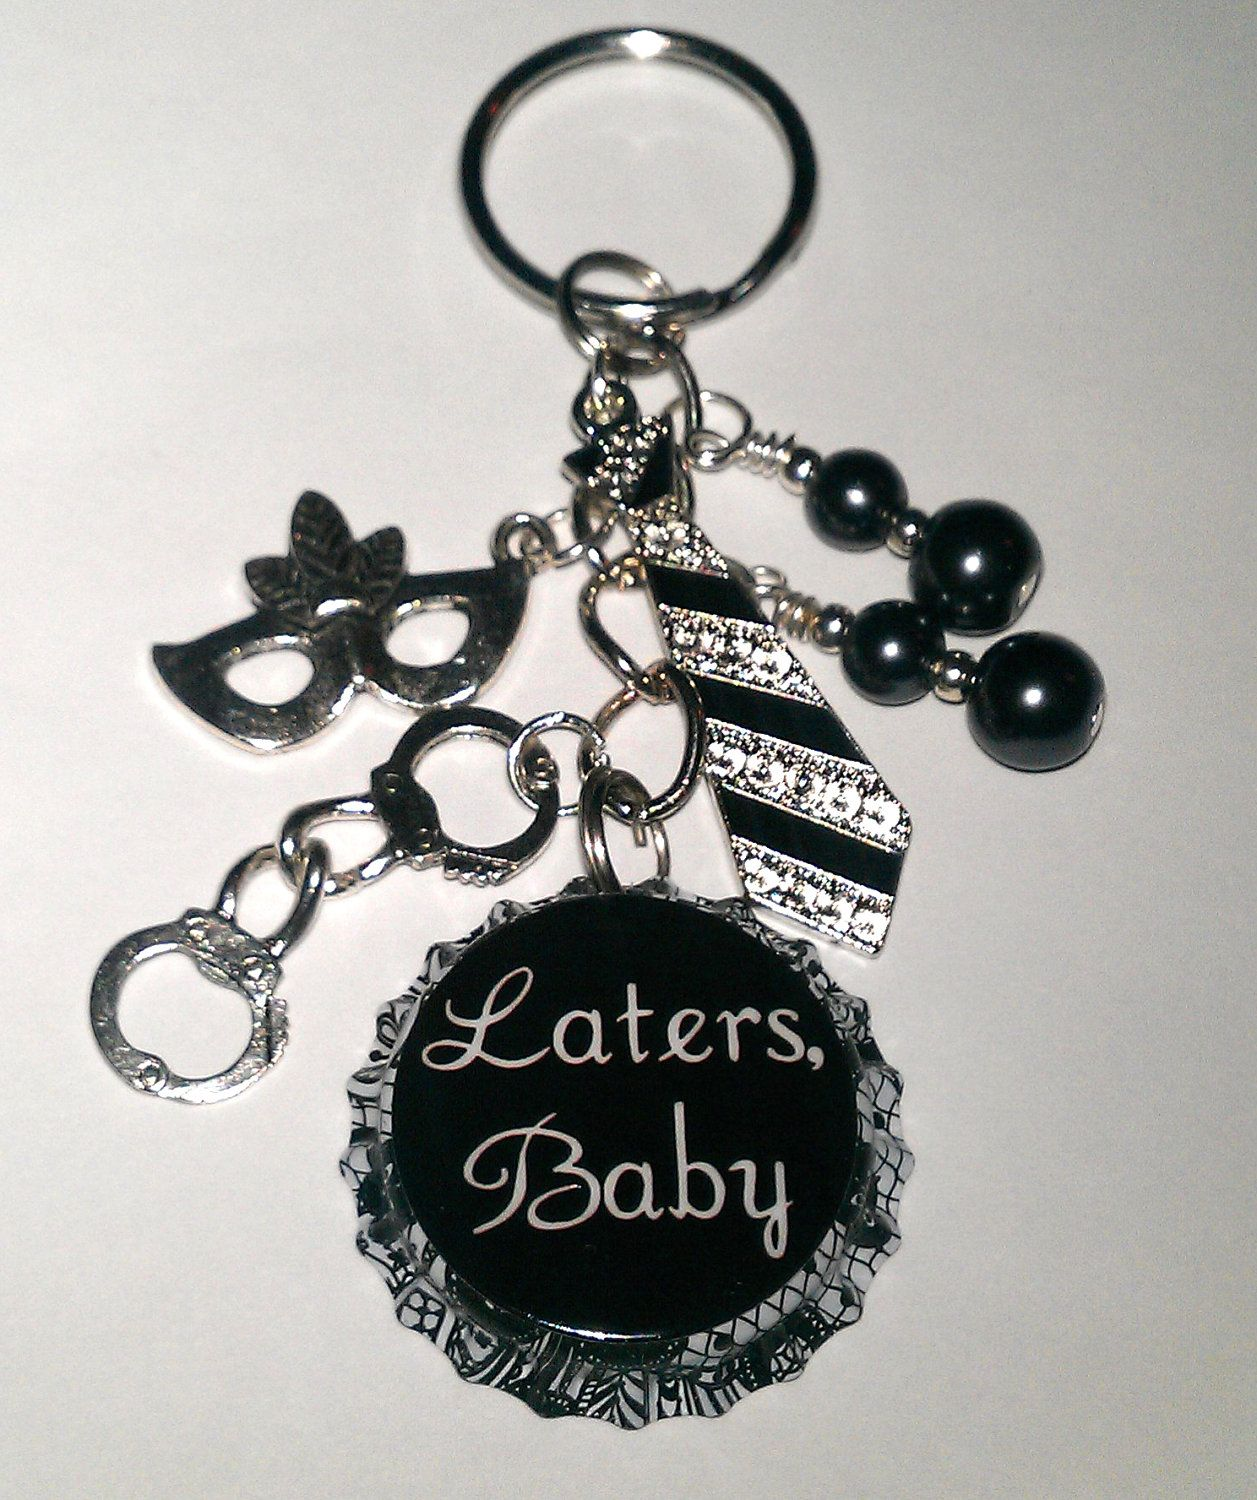 SALE Laters Baby Fifty Shades of Grey 50 Inspired Handcuffs Tie Mask Bottle Cap Keychain Key chain. $14.00, via Etsy.